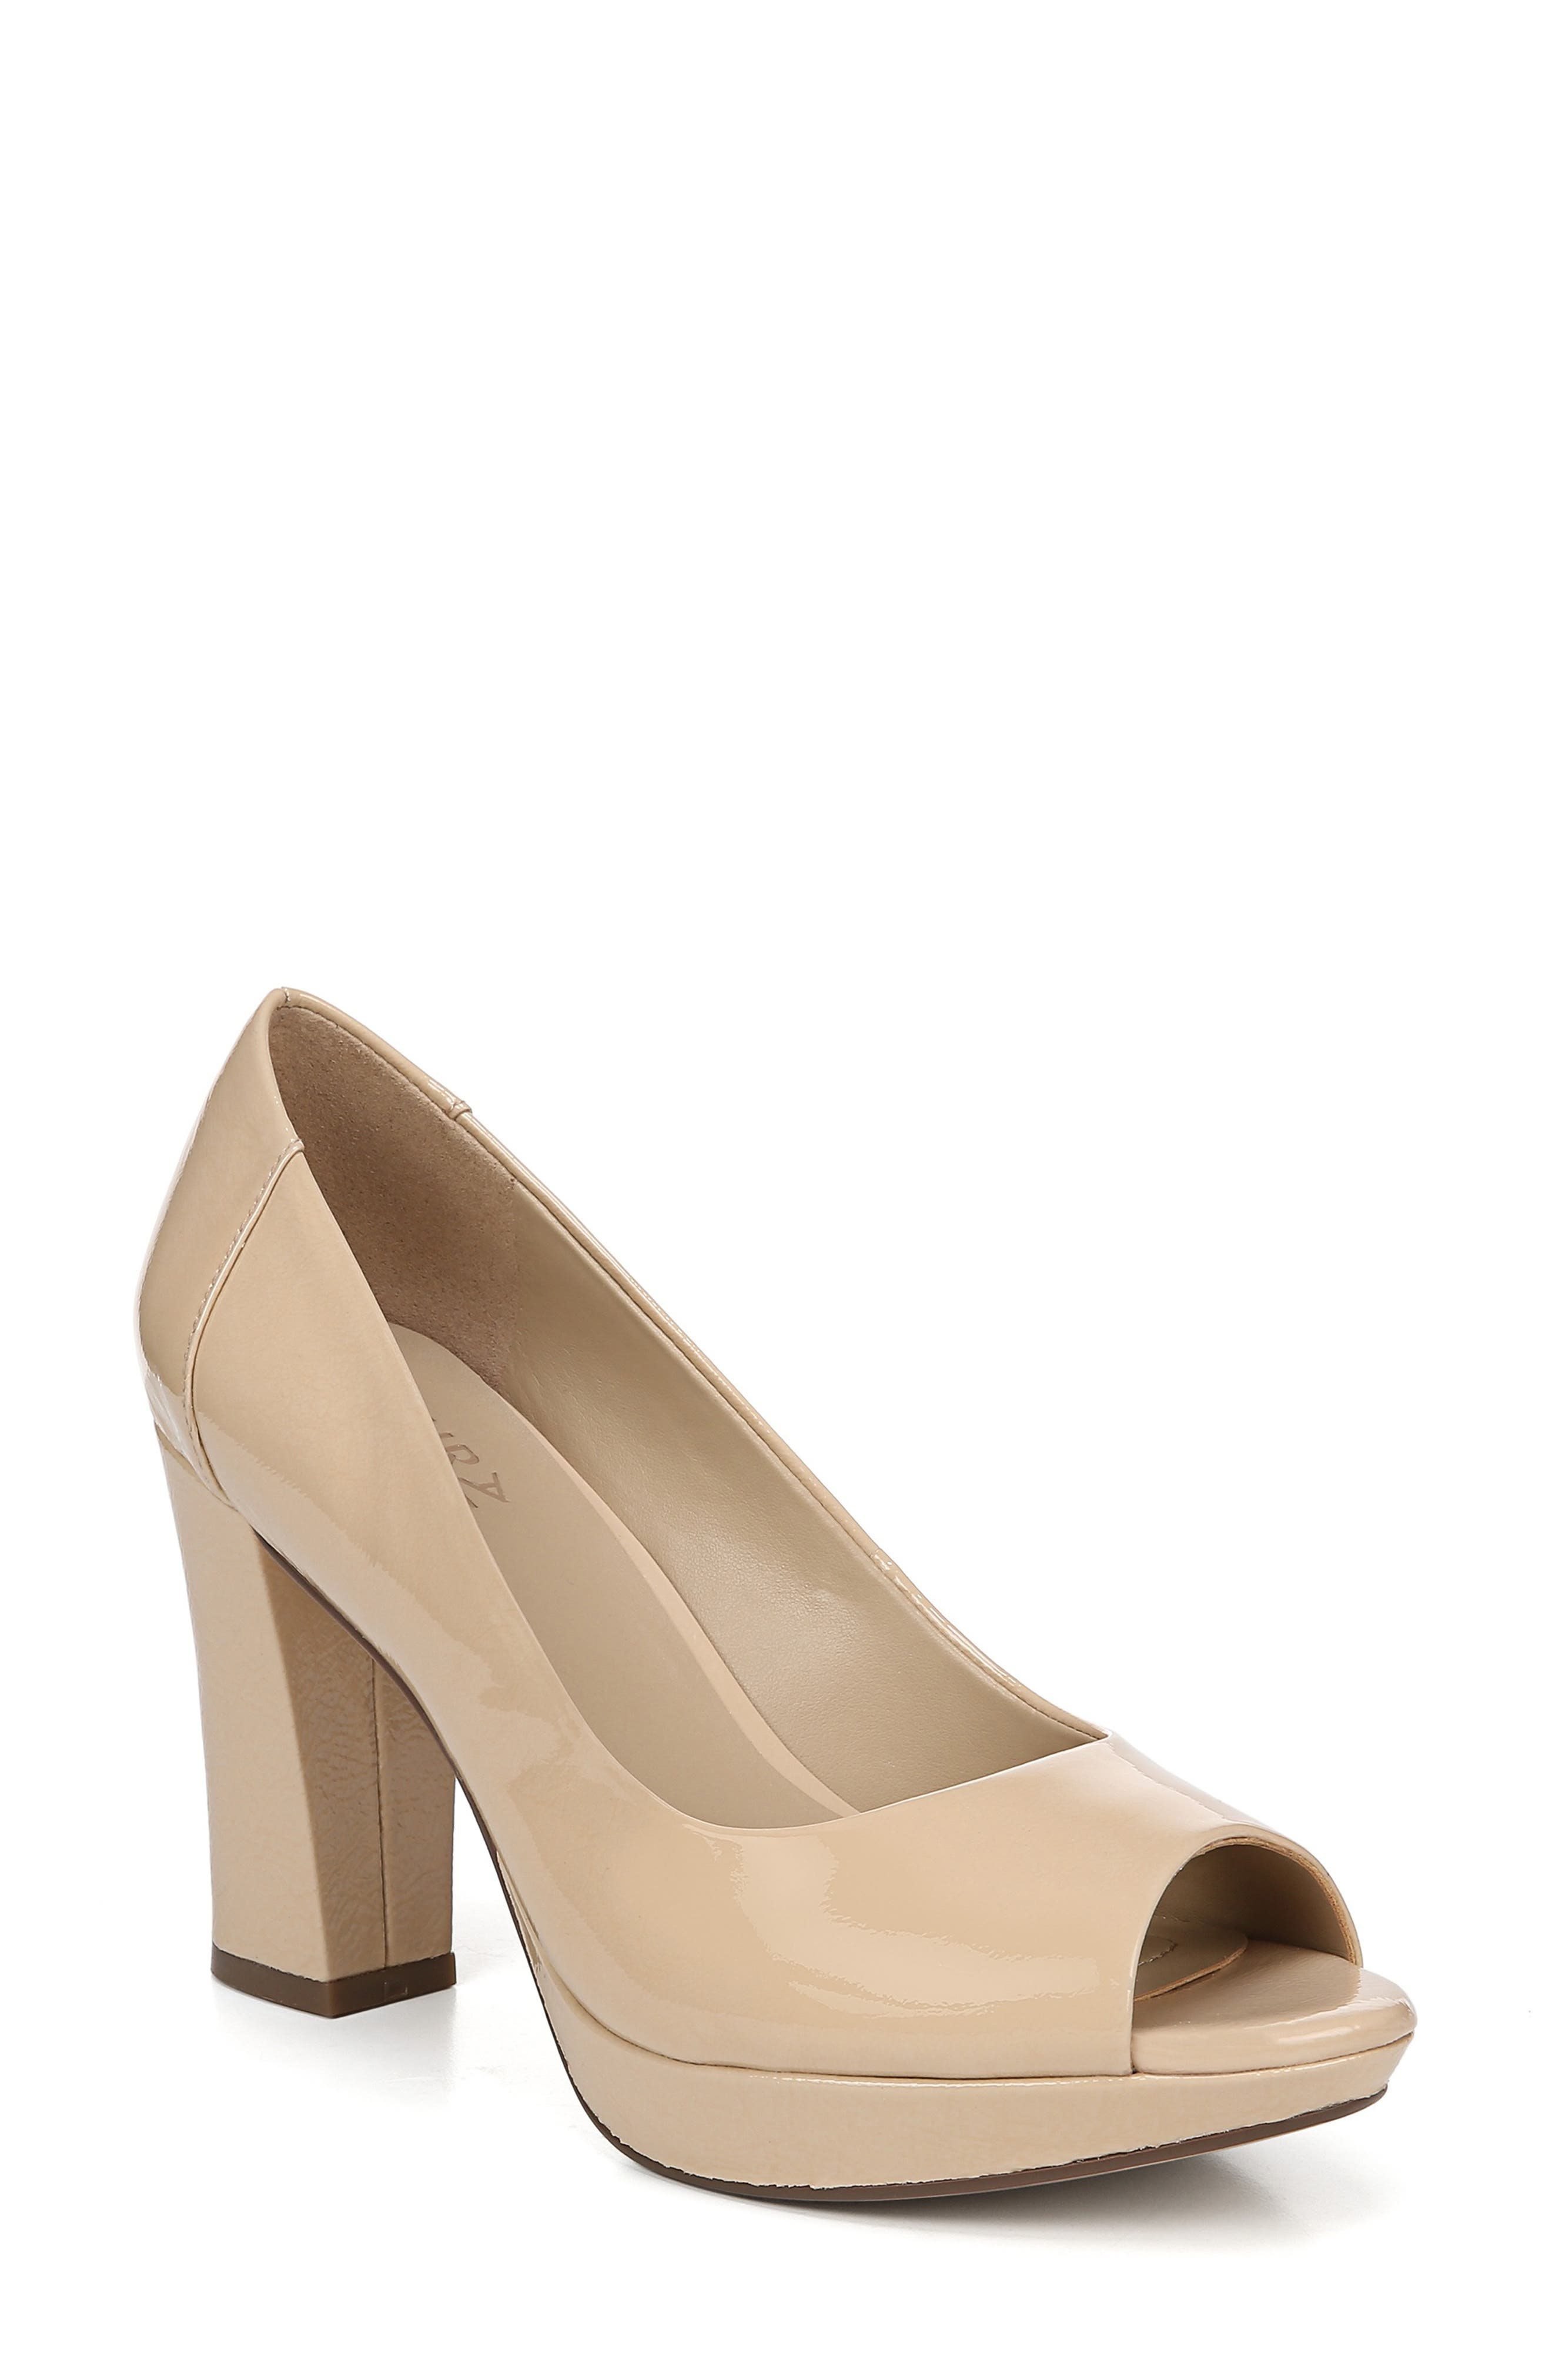 Naturalizer Amie Pump- Beige